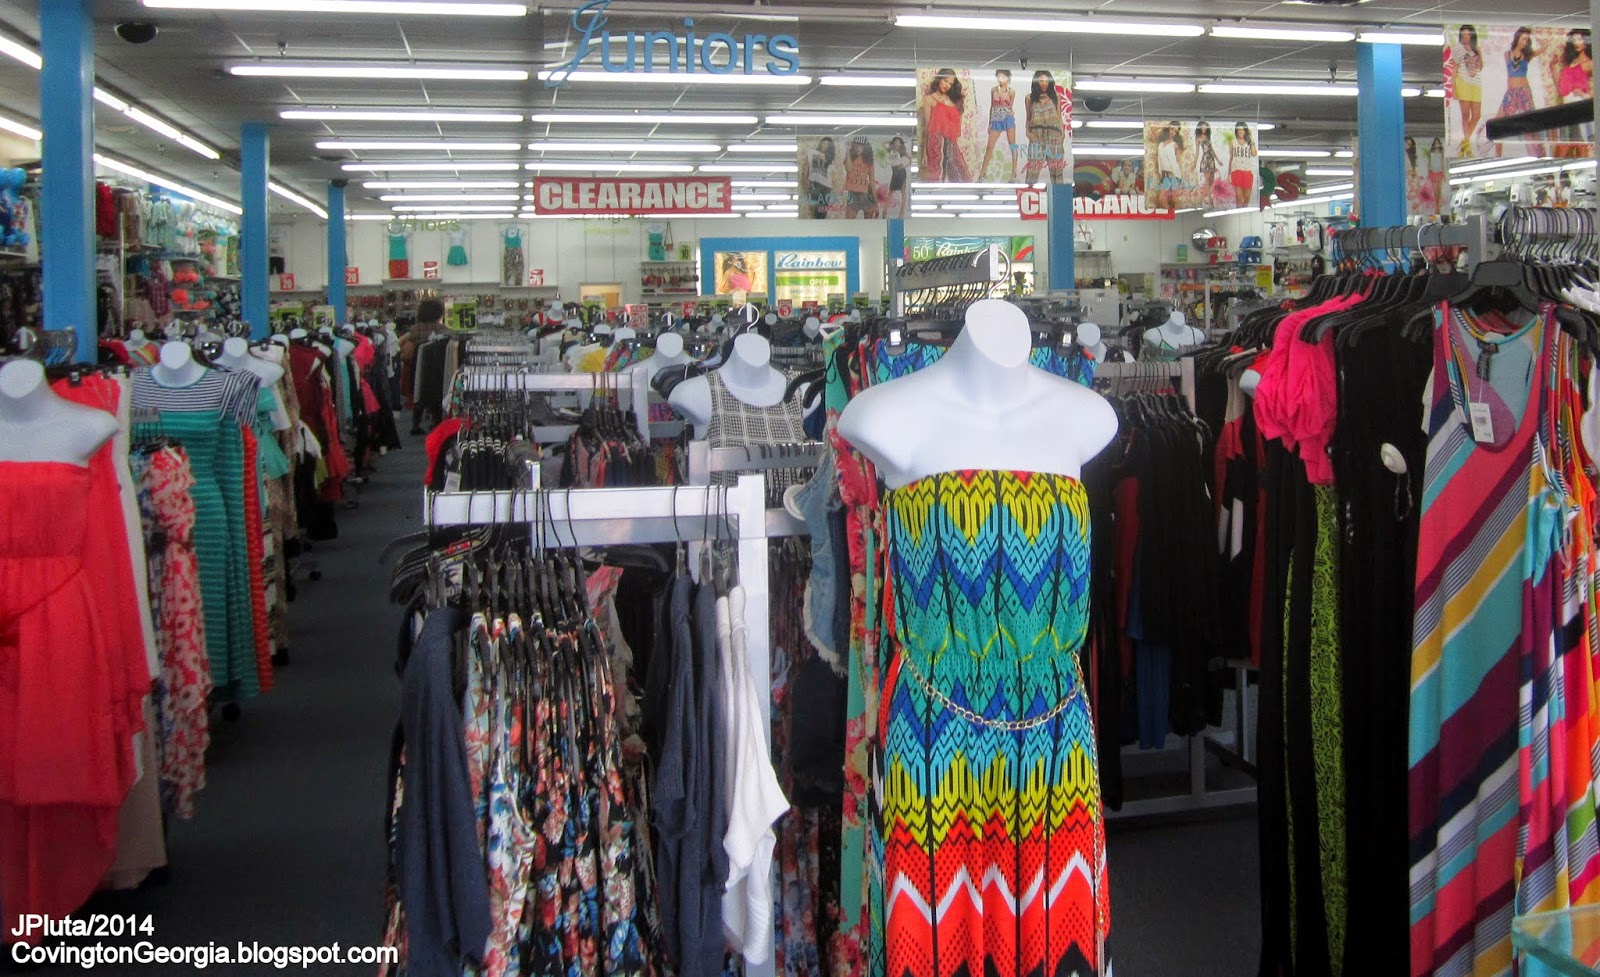 Rainbows clothing store coupons